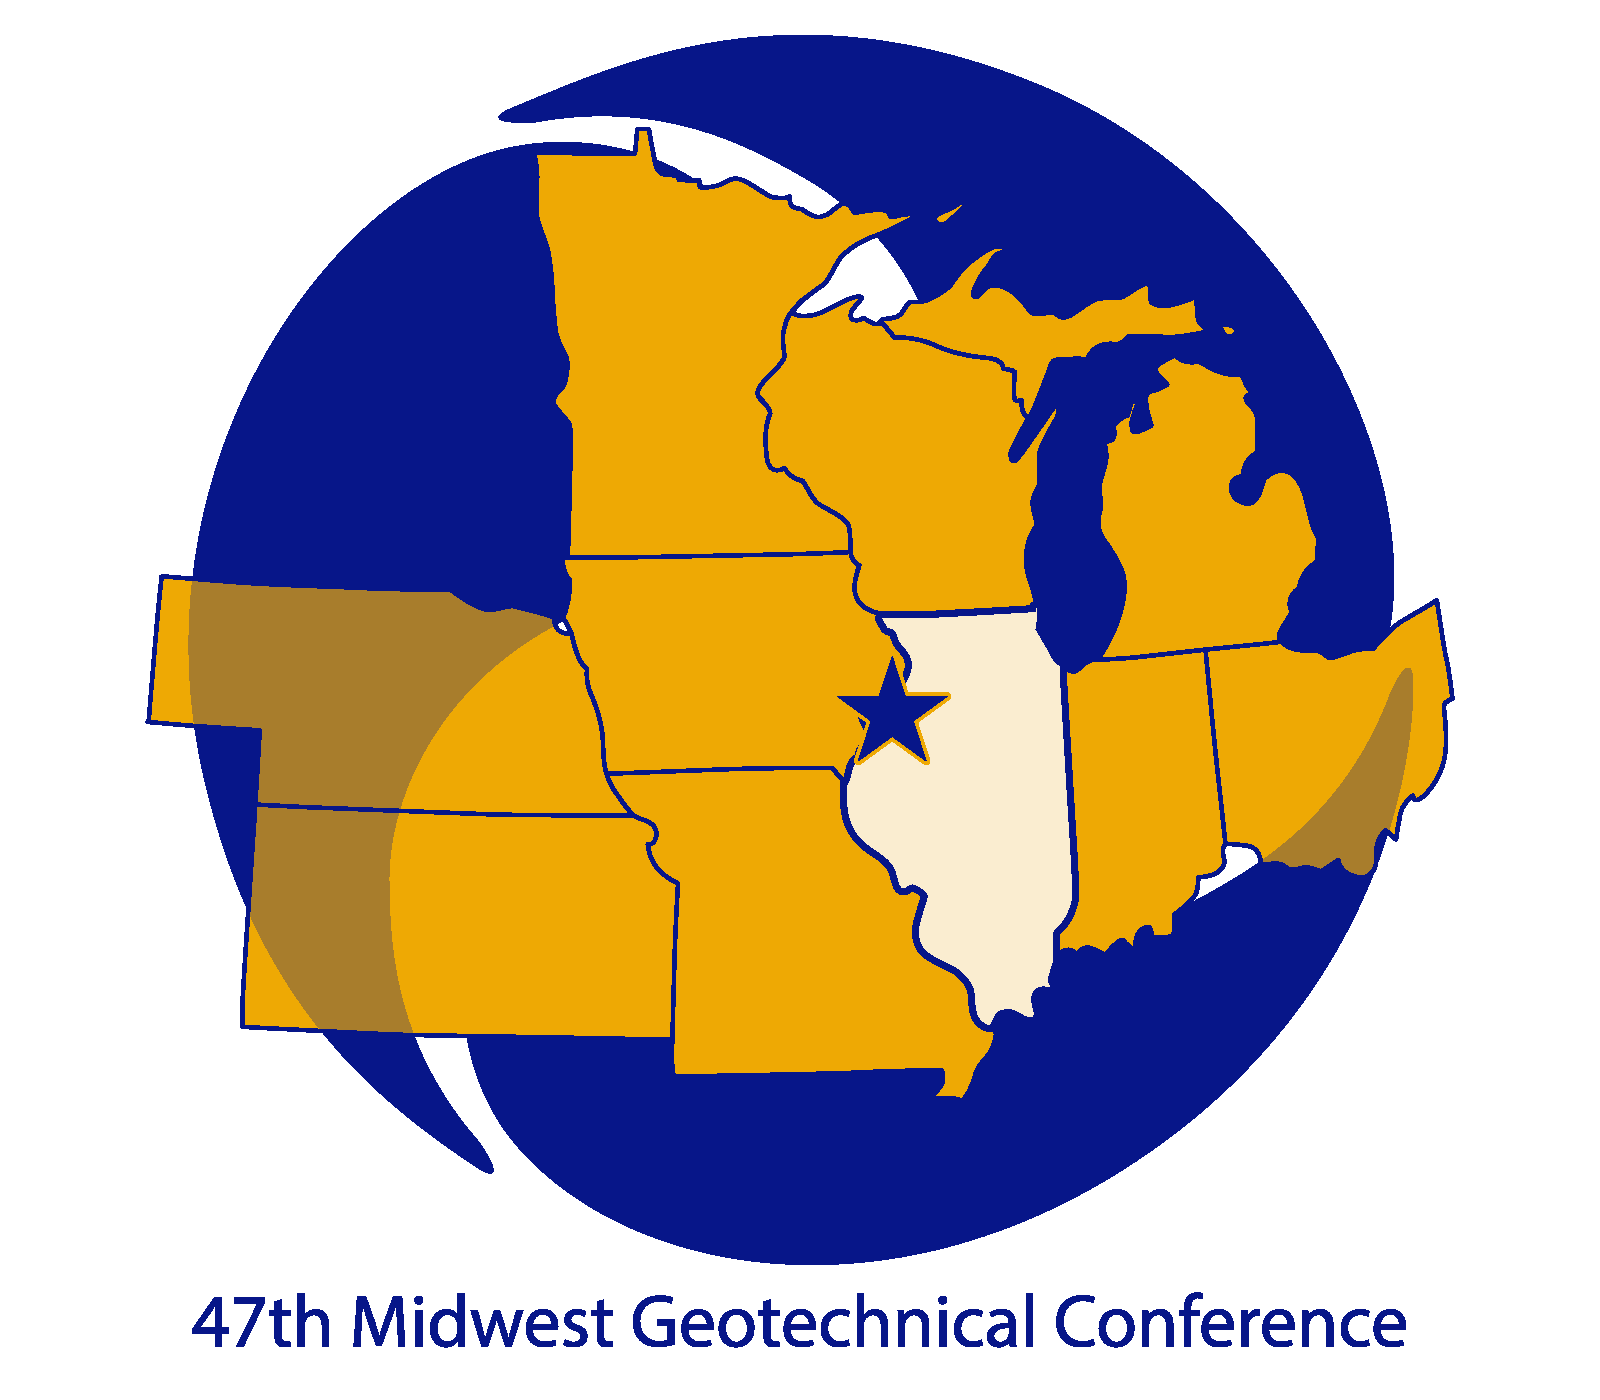 Midwest Geotechnical Conference